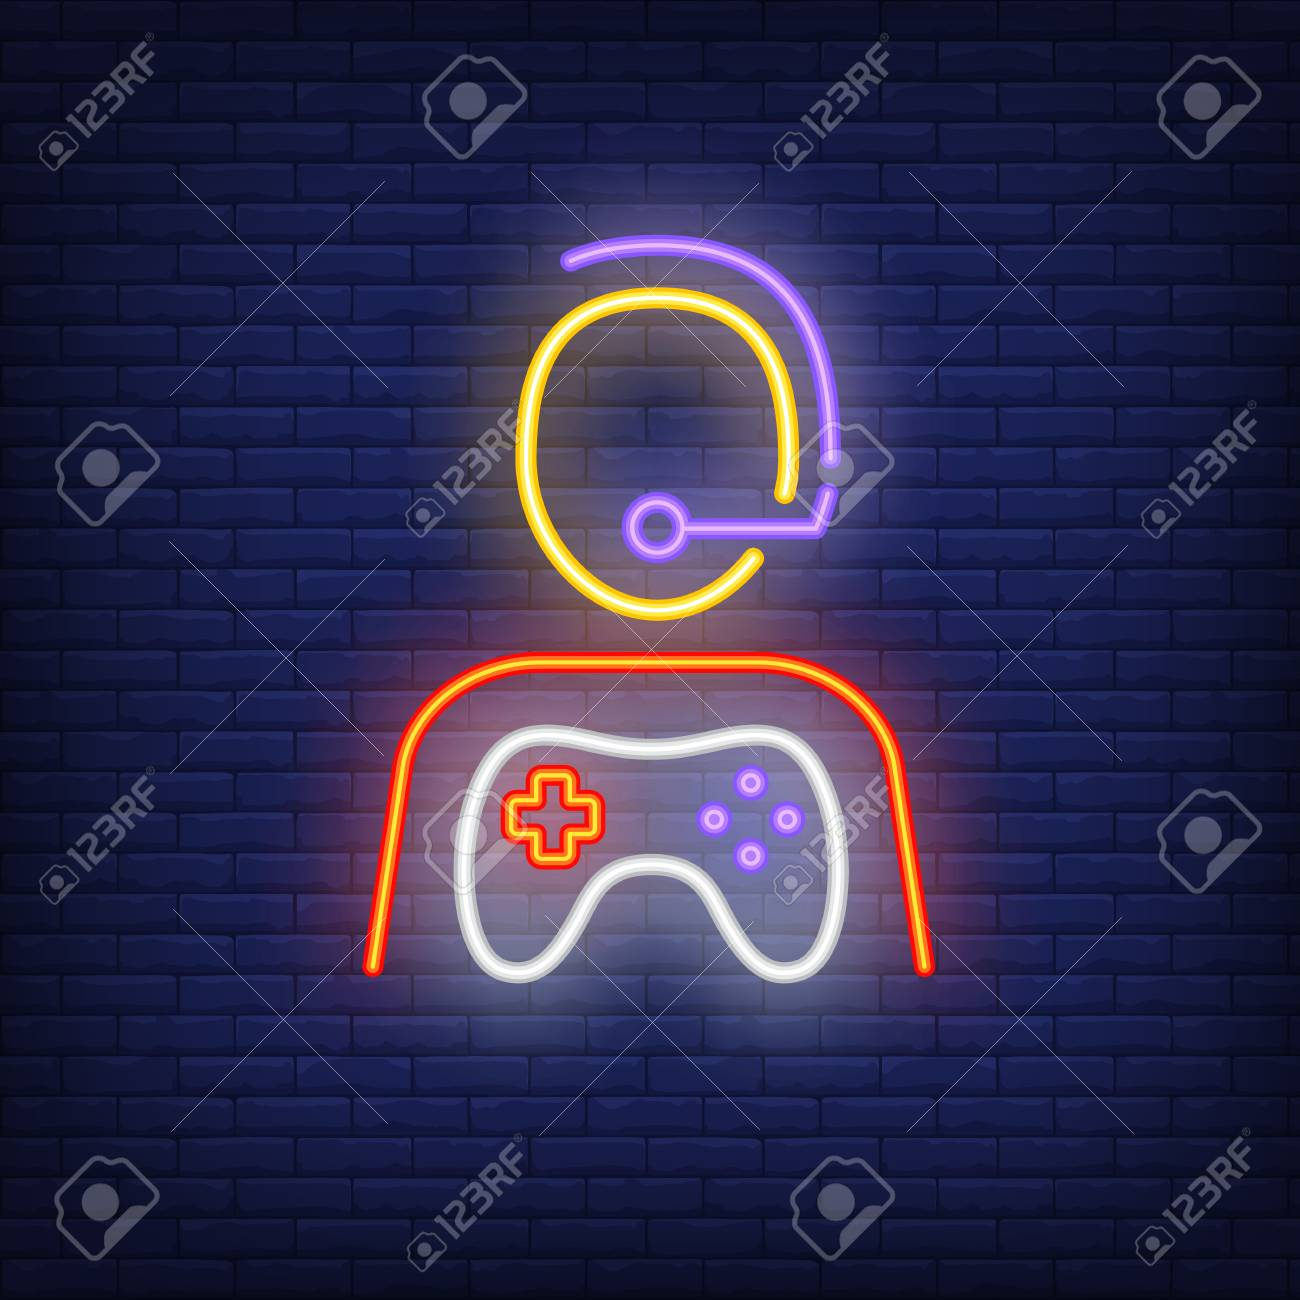 Gamer Neon Icon Shape Of Person In Headset With Game Controller Royalty Free Cliparts Vectors And Stock Illustration Image 110350266